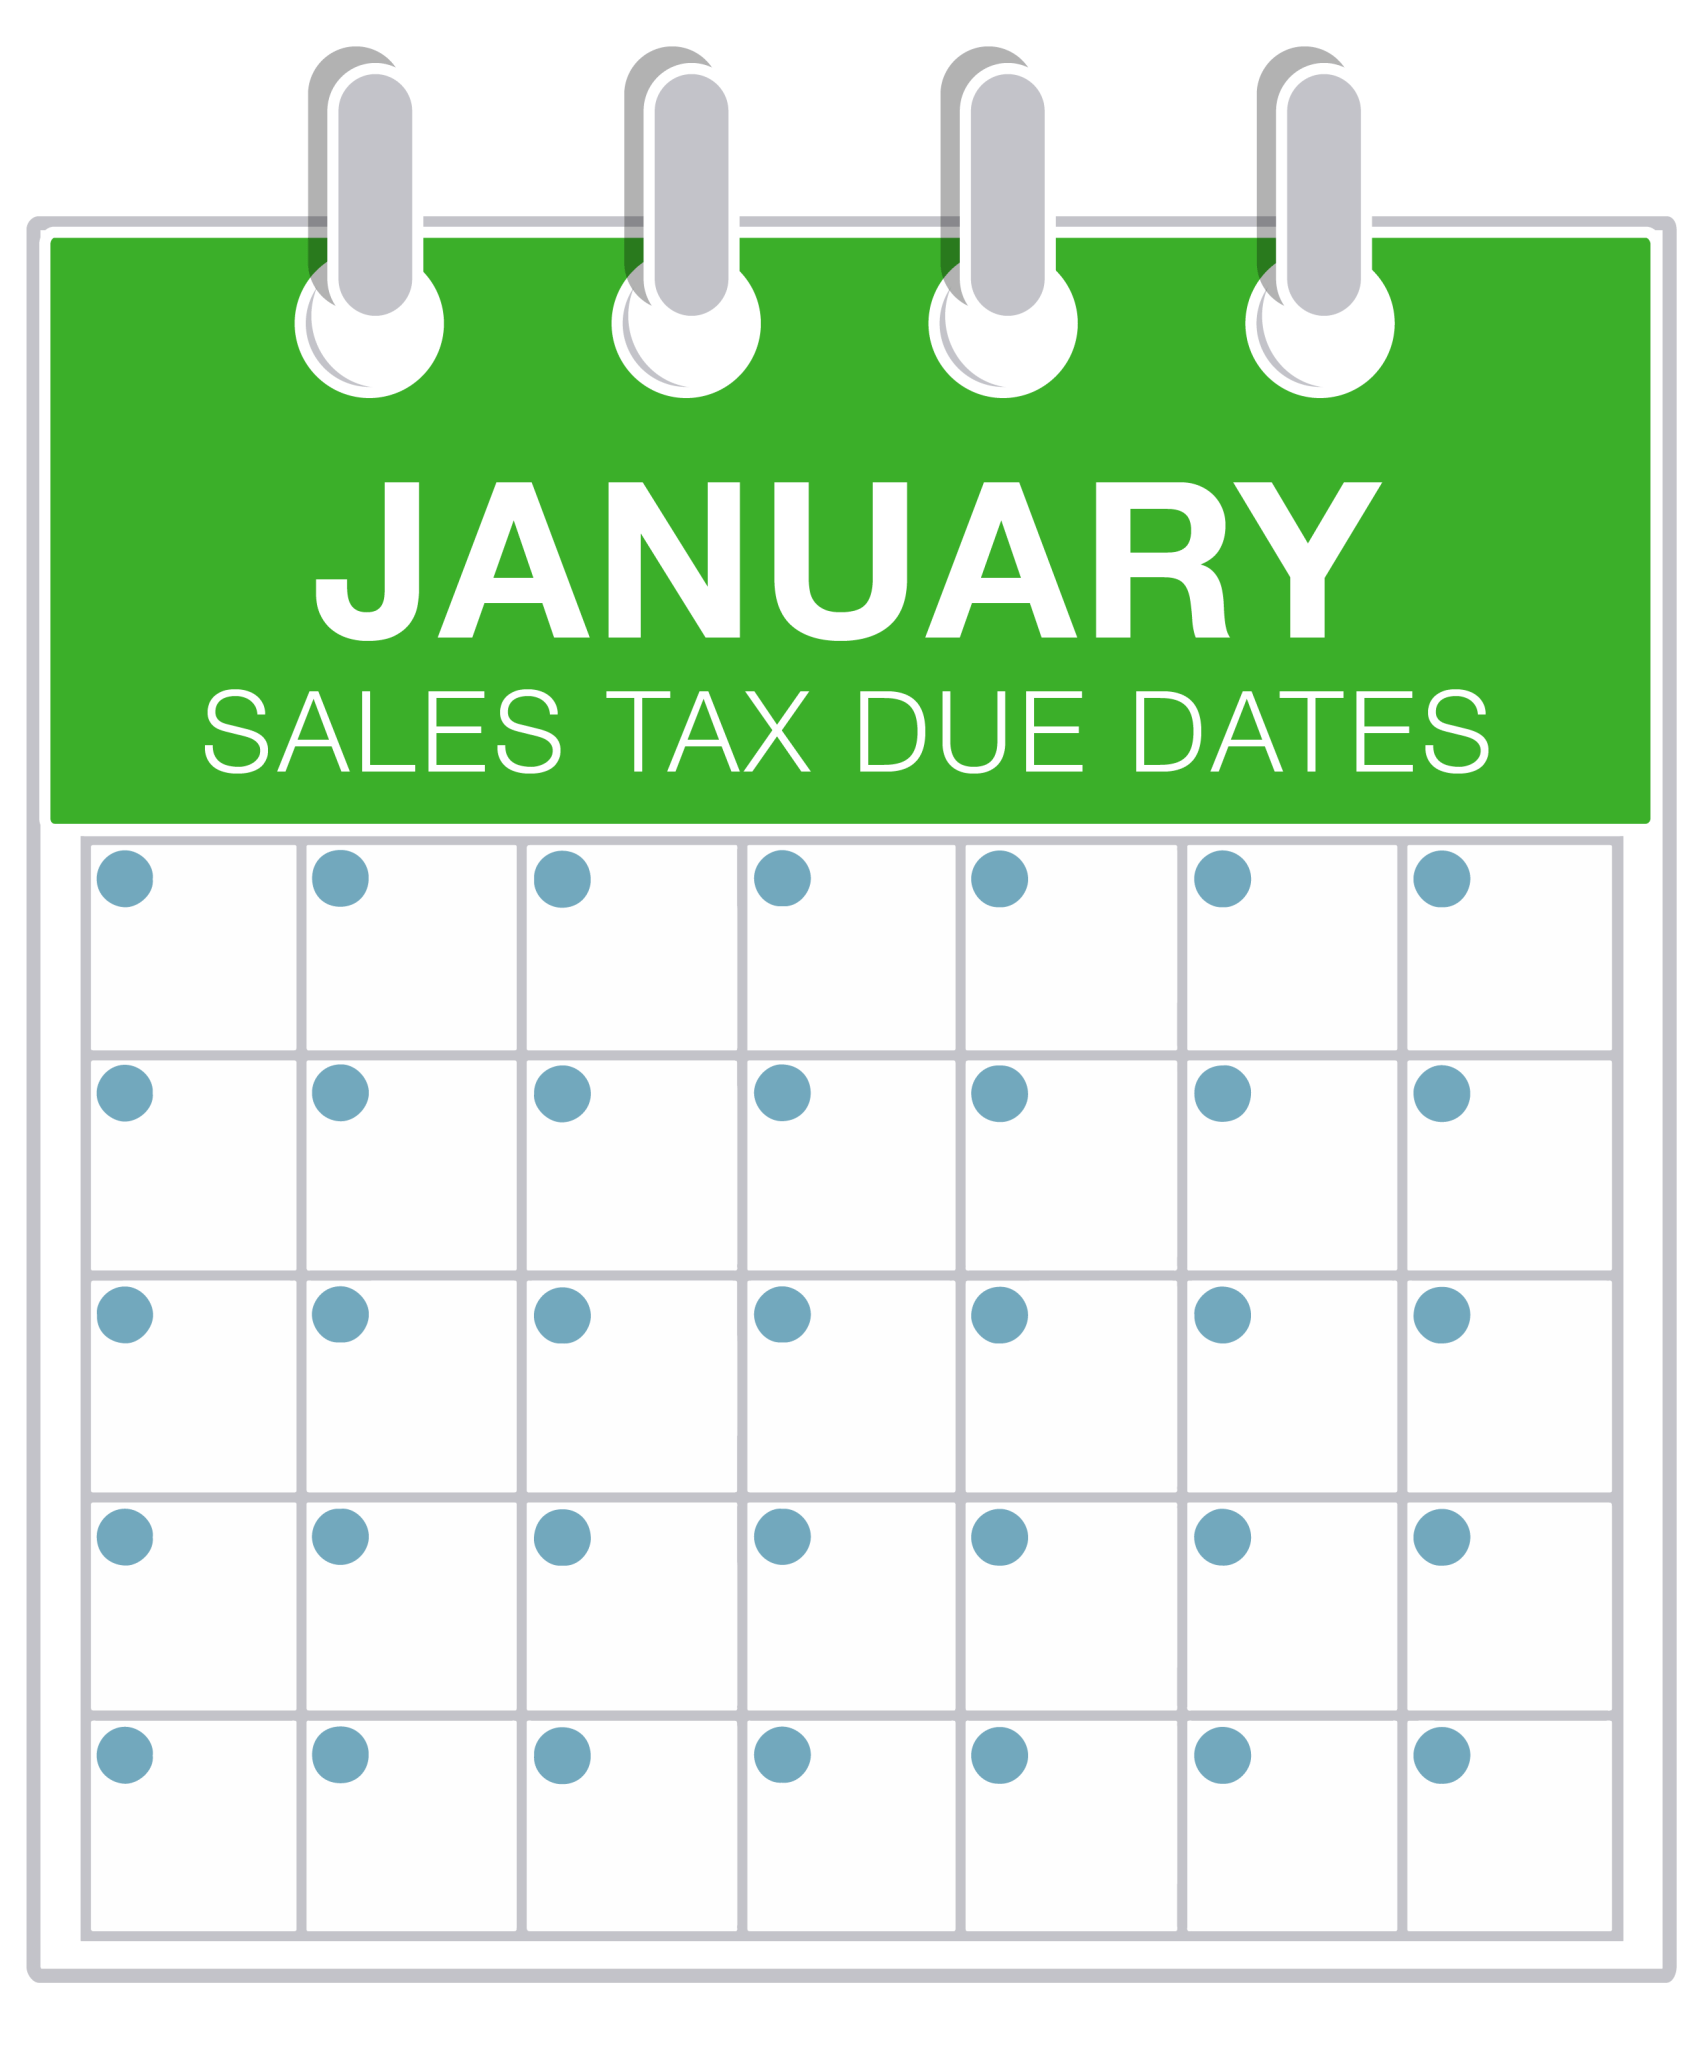 January Sales Tax Due Dates